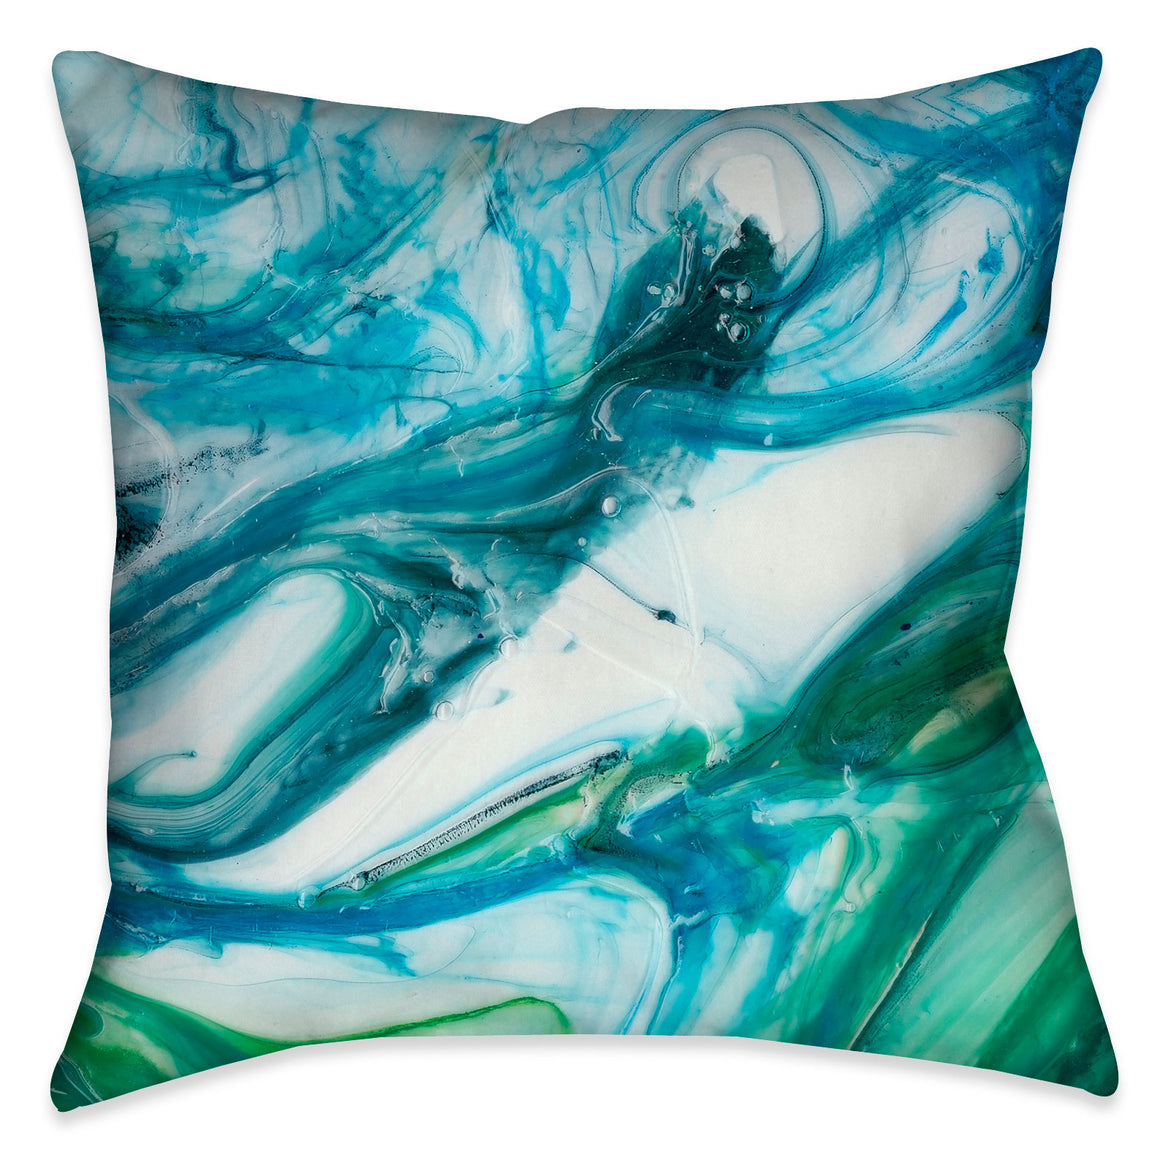 This modern tidal inspired design evokes beautiful artistic energy through fluid blues and greens.